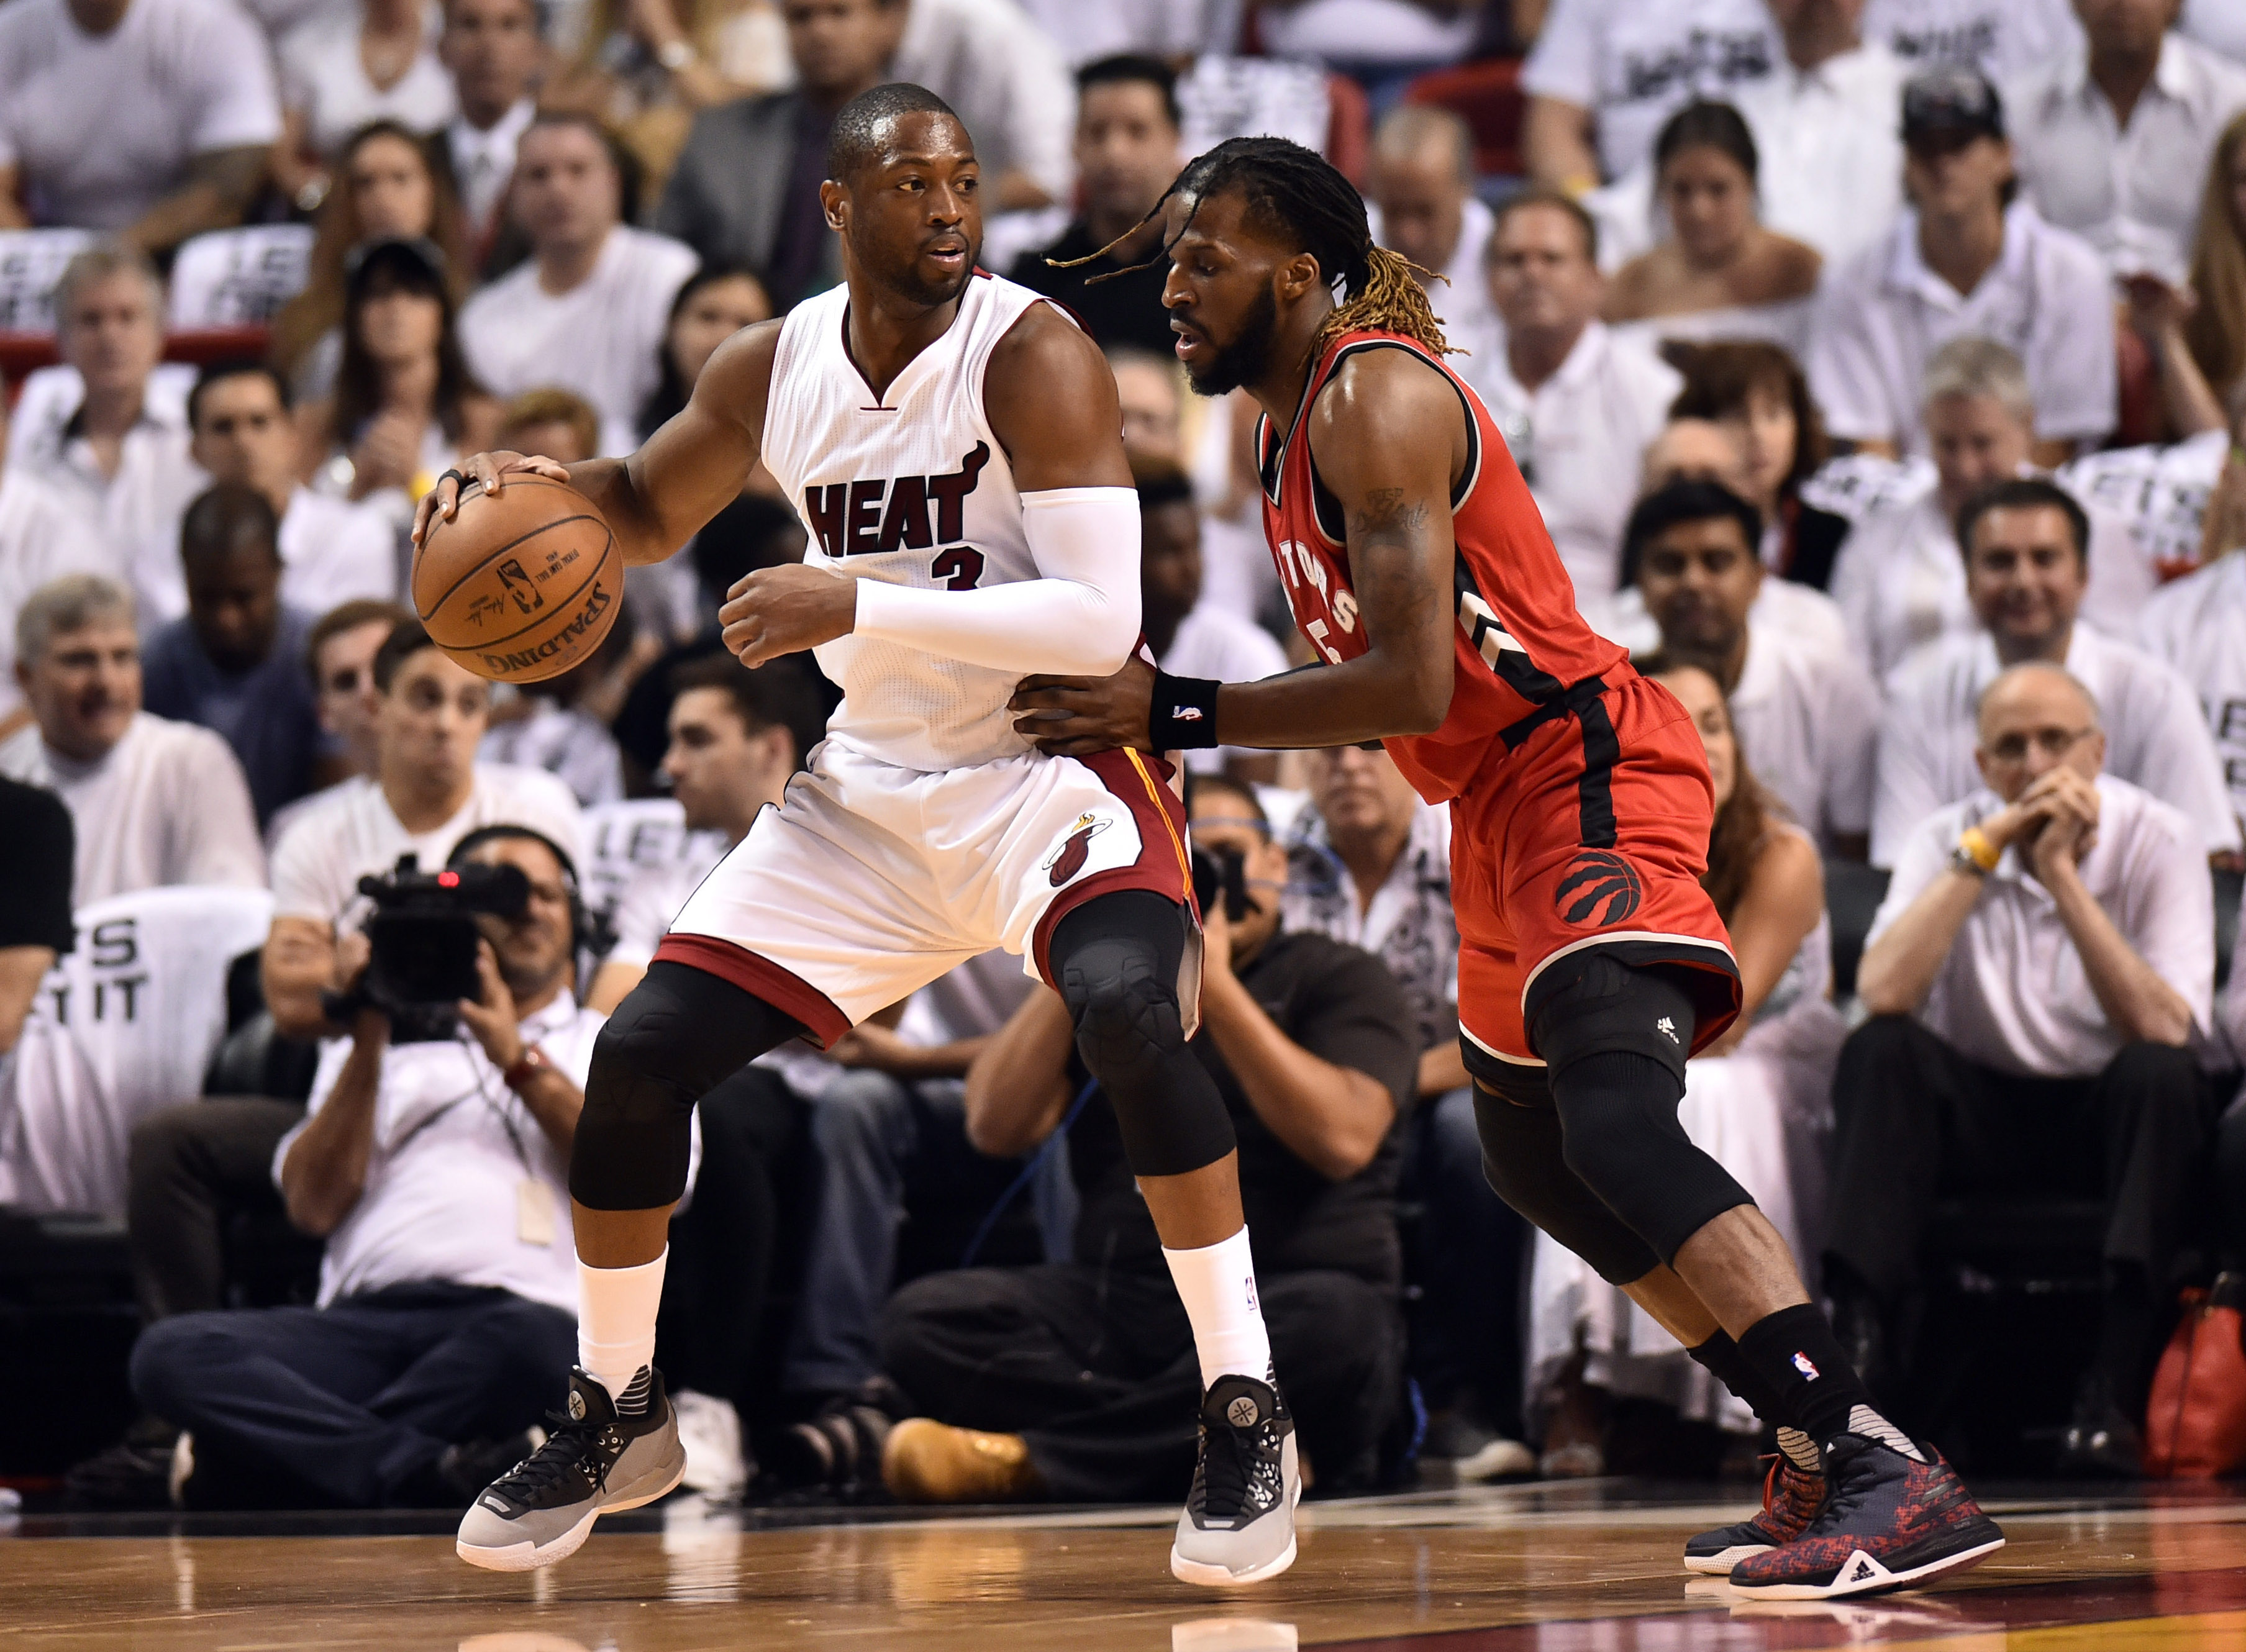 Heat vs. Raptors 2016 live stream: Time, TV schedule and how to watch Game 7 online